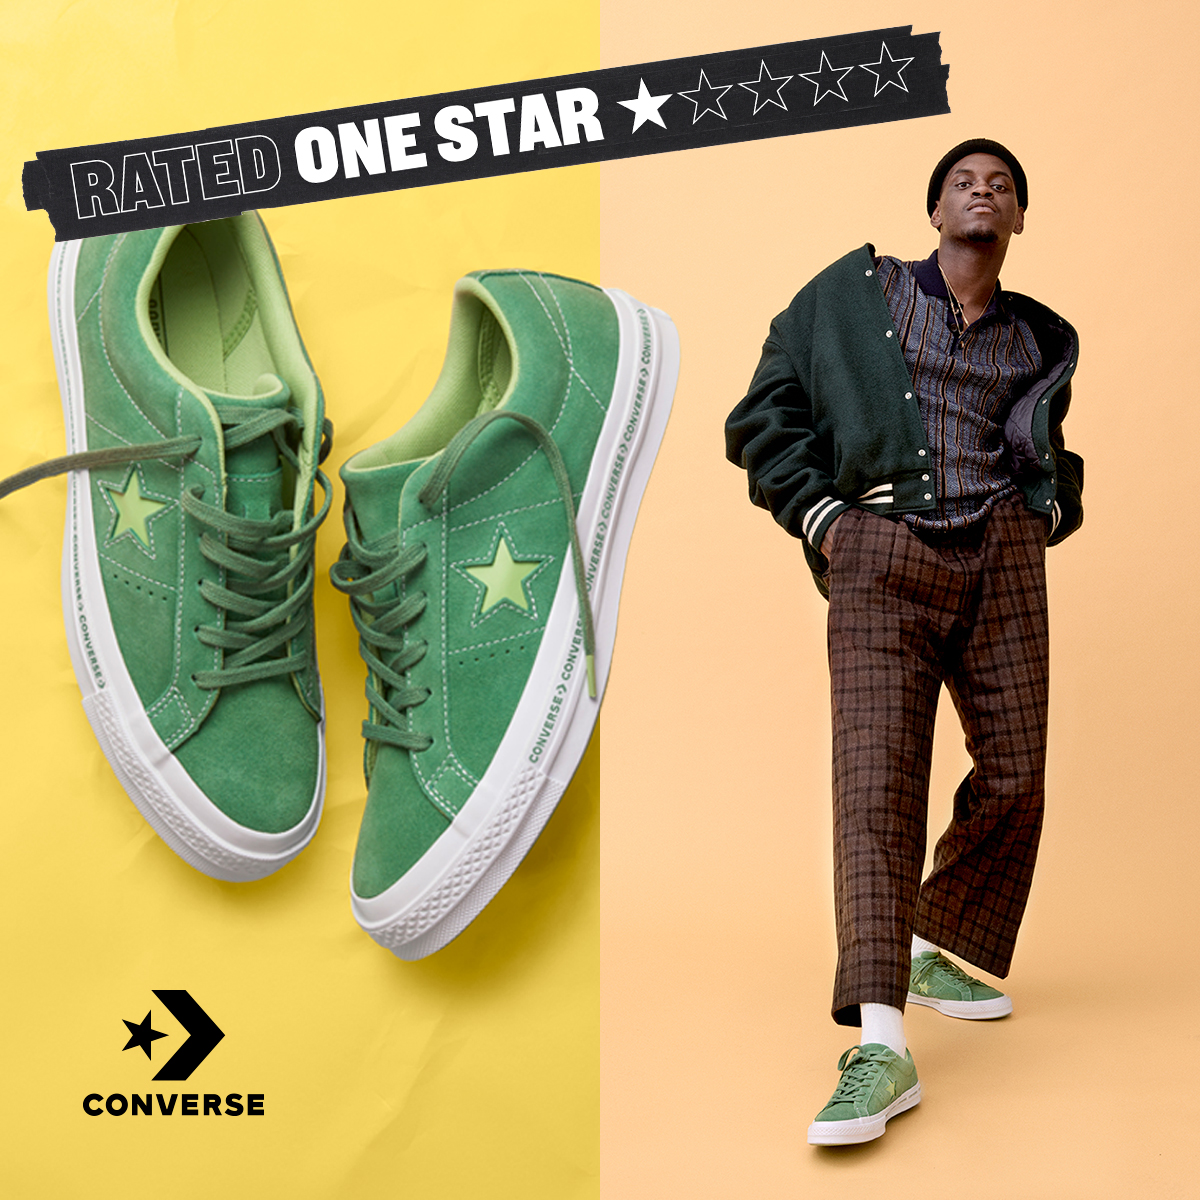 48dc22c94c434d Inspired by their iconic line of One Star footwear